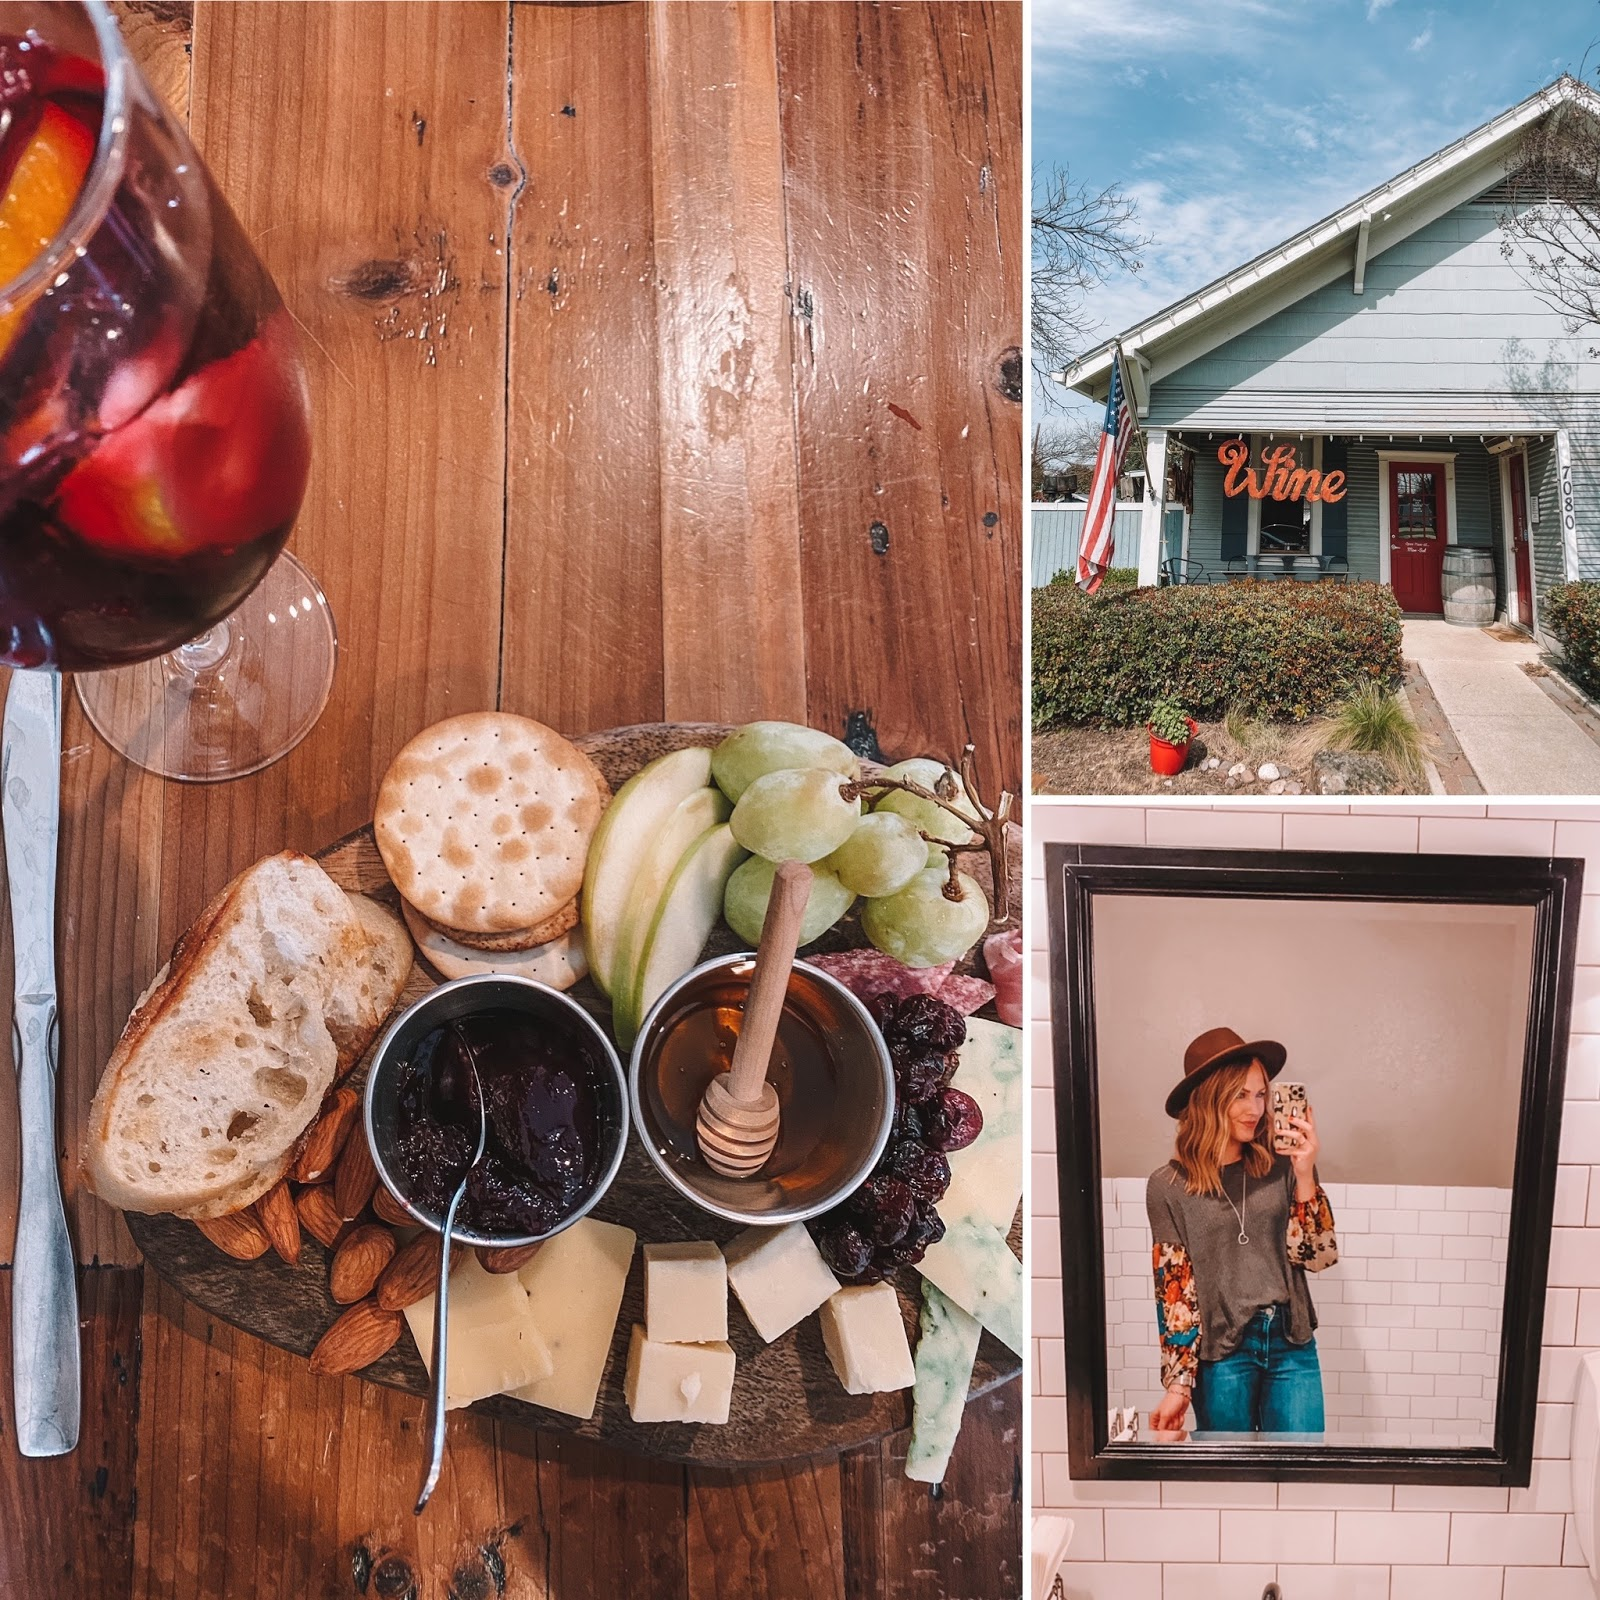 Eight11, located on Main Street in Frisco, Texas, has the yummiest cheese boards and Sangria